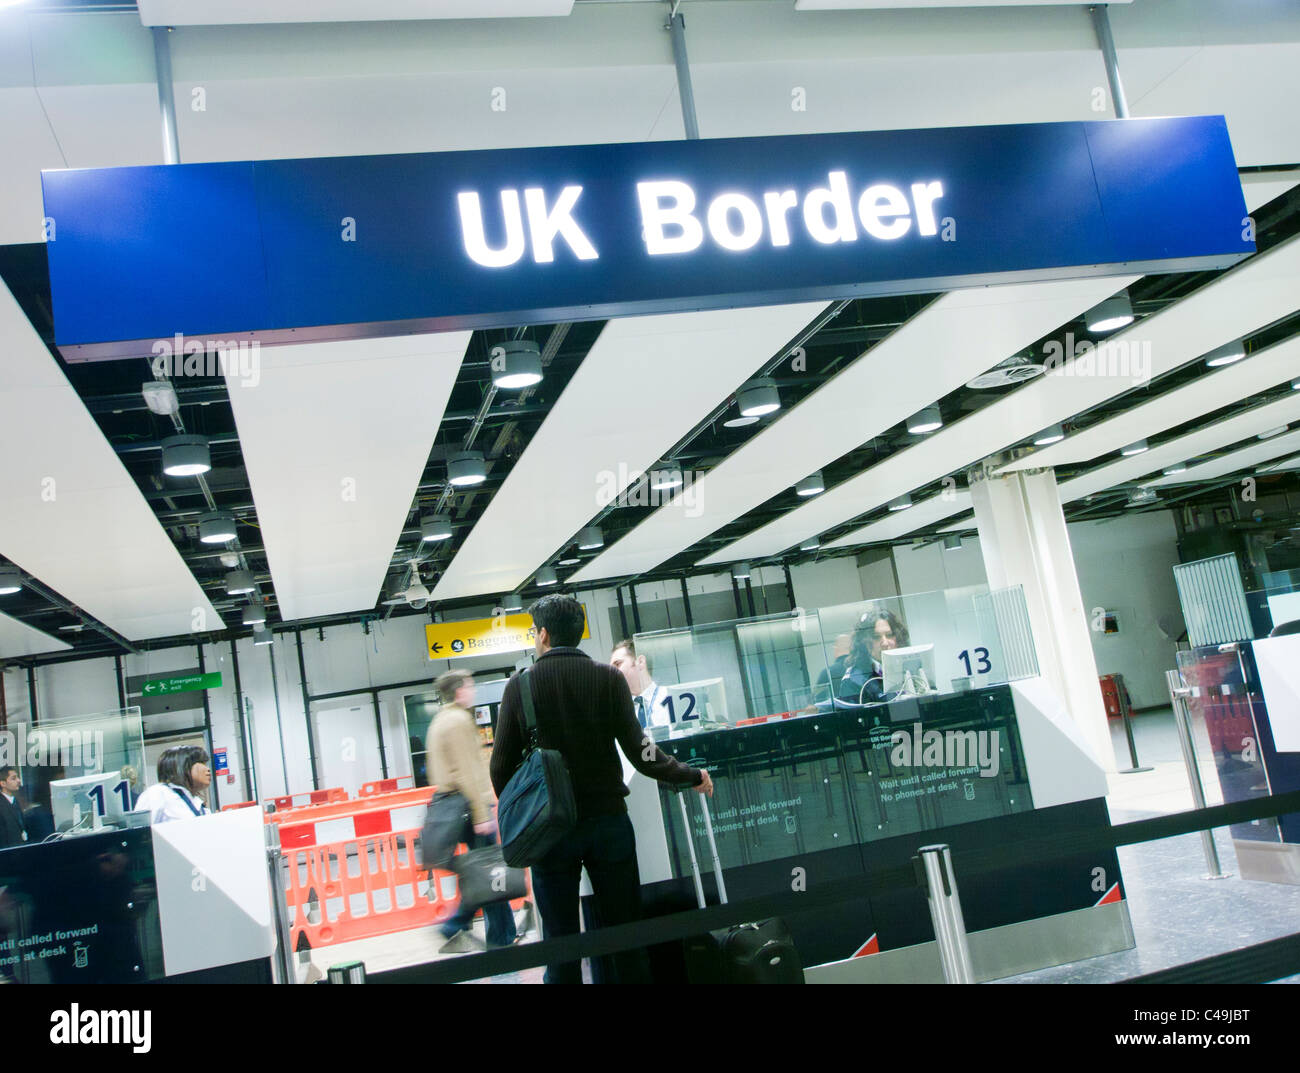 Immigration at UK Border control at an airport in Britain - Stock Image